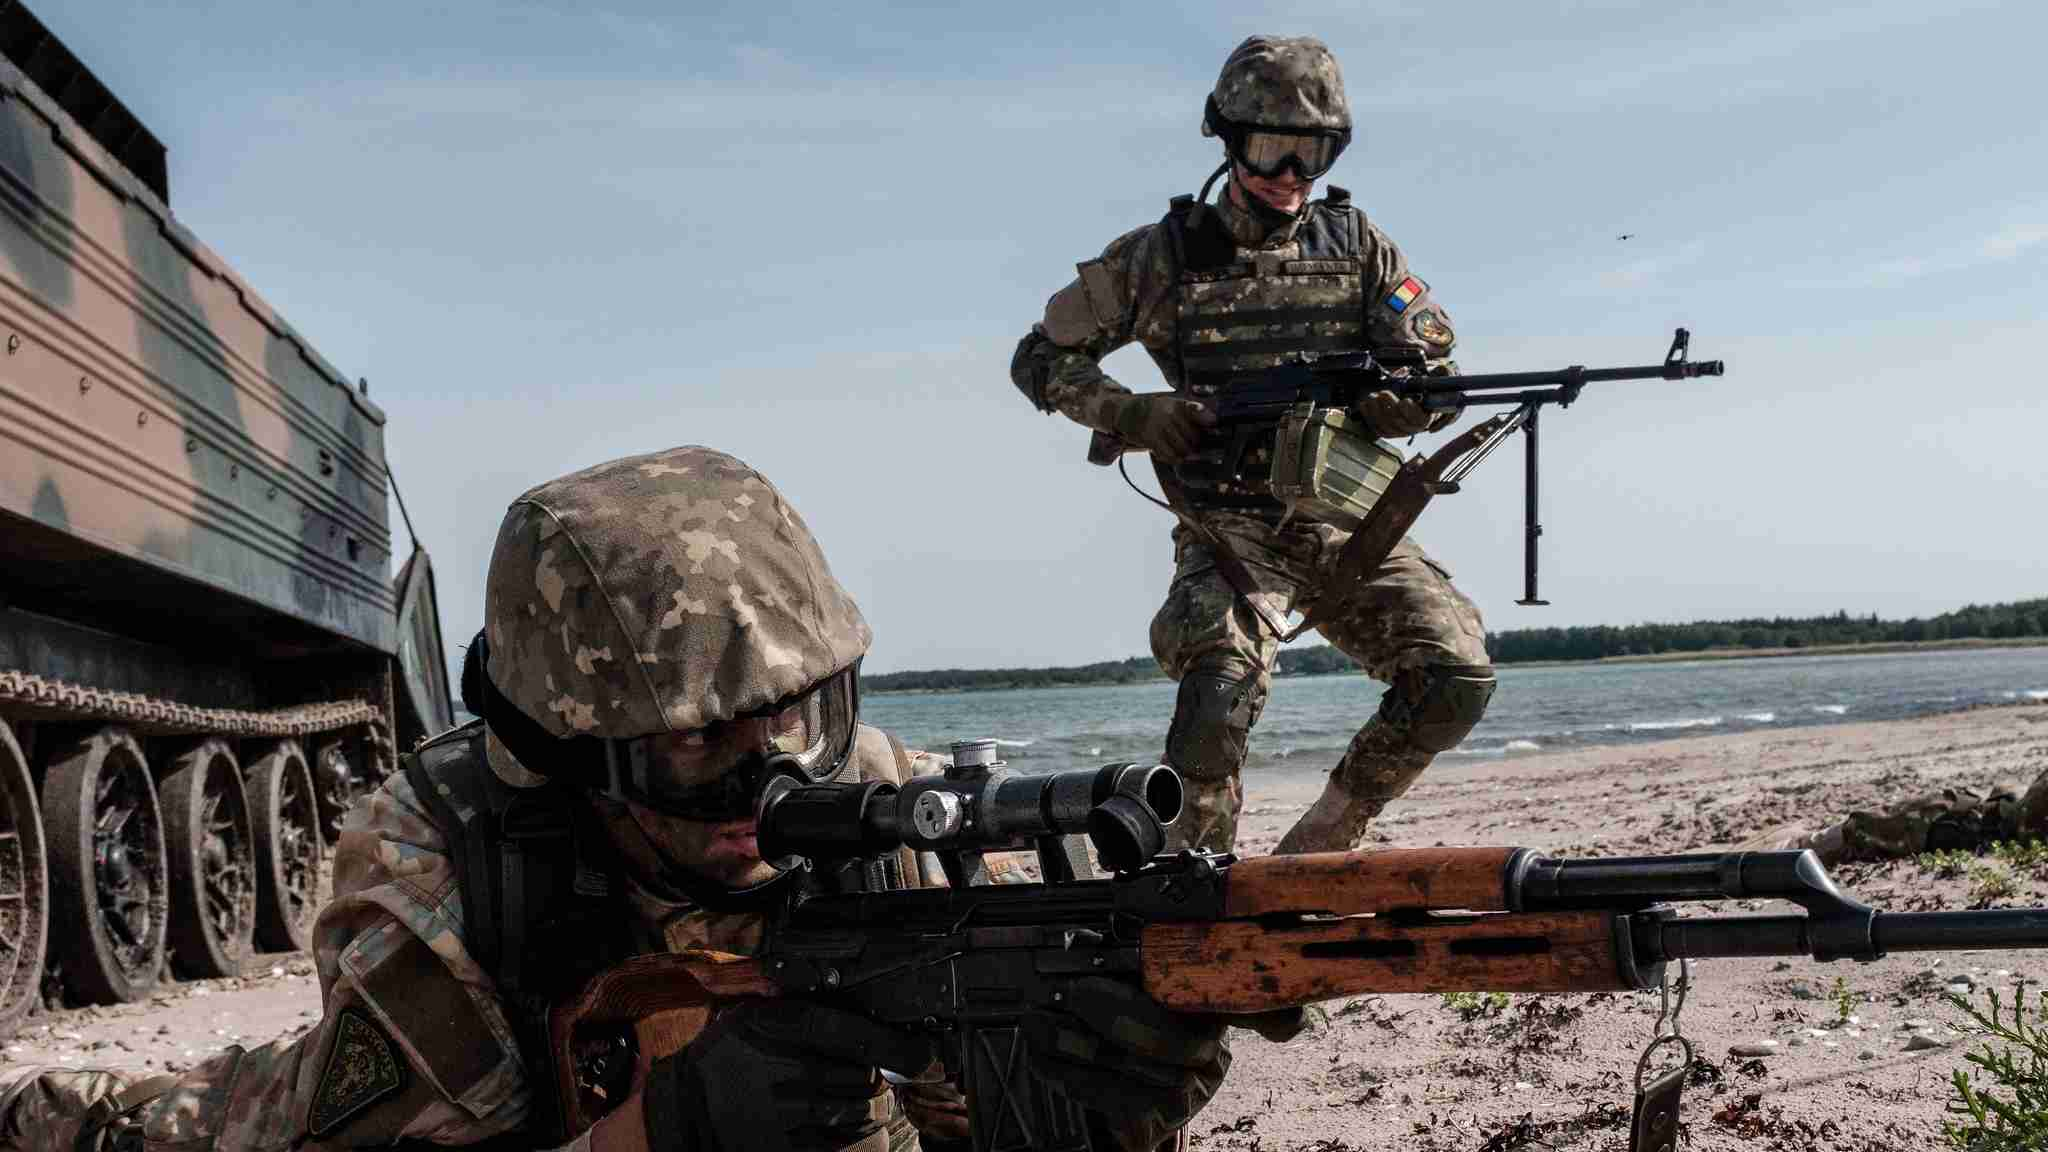 Photo: Romanian Marines storm a beach on Saaremaa Island in Estonia during BALTOPS 2019. An annual US-led exercise involving 16 NATO Allies and two partner nations, BALTOPS focuses on improving maritime interoperability through multinational amphibious operations in the Baltic Sea region. Credit: NATO